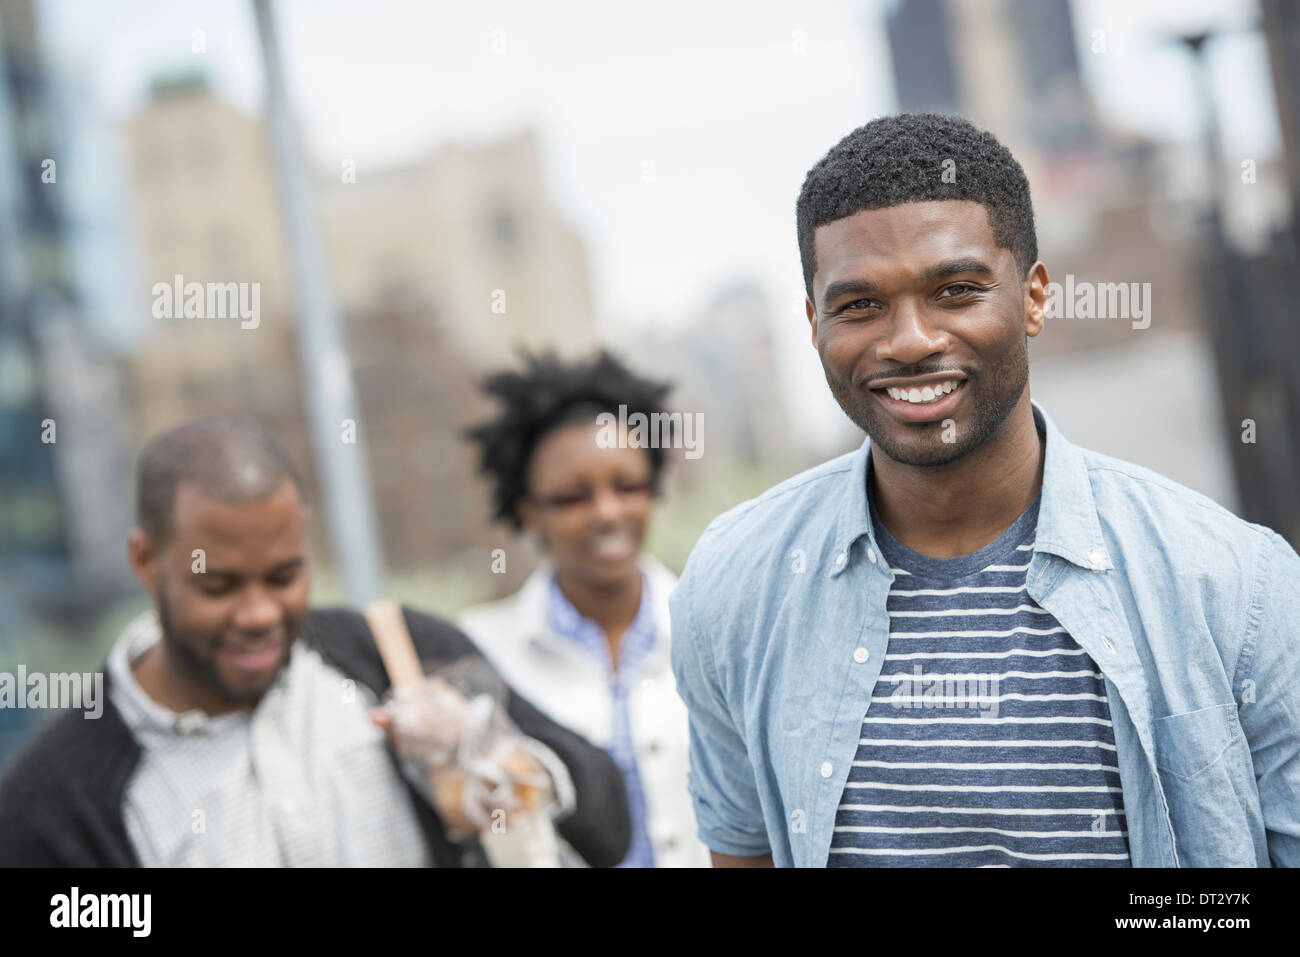 Three people a couple and a young man - Stock Image